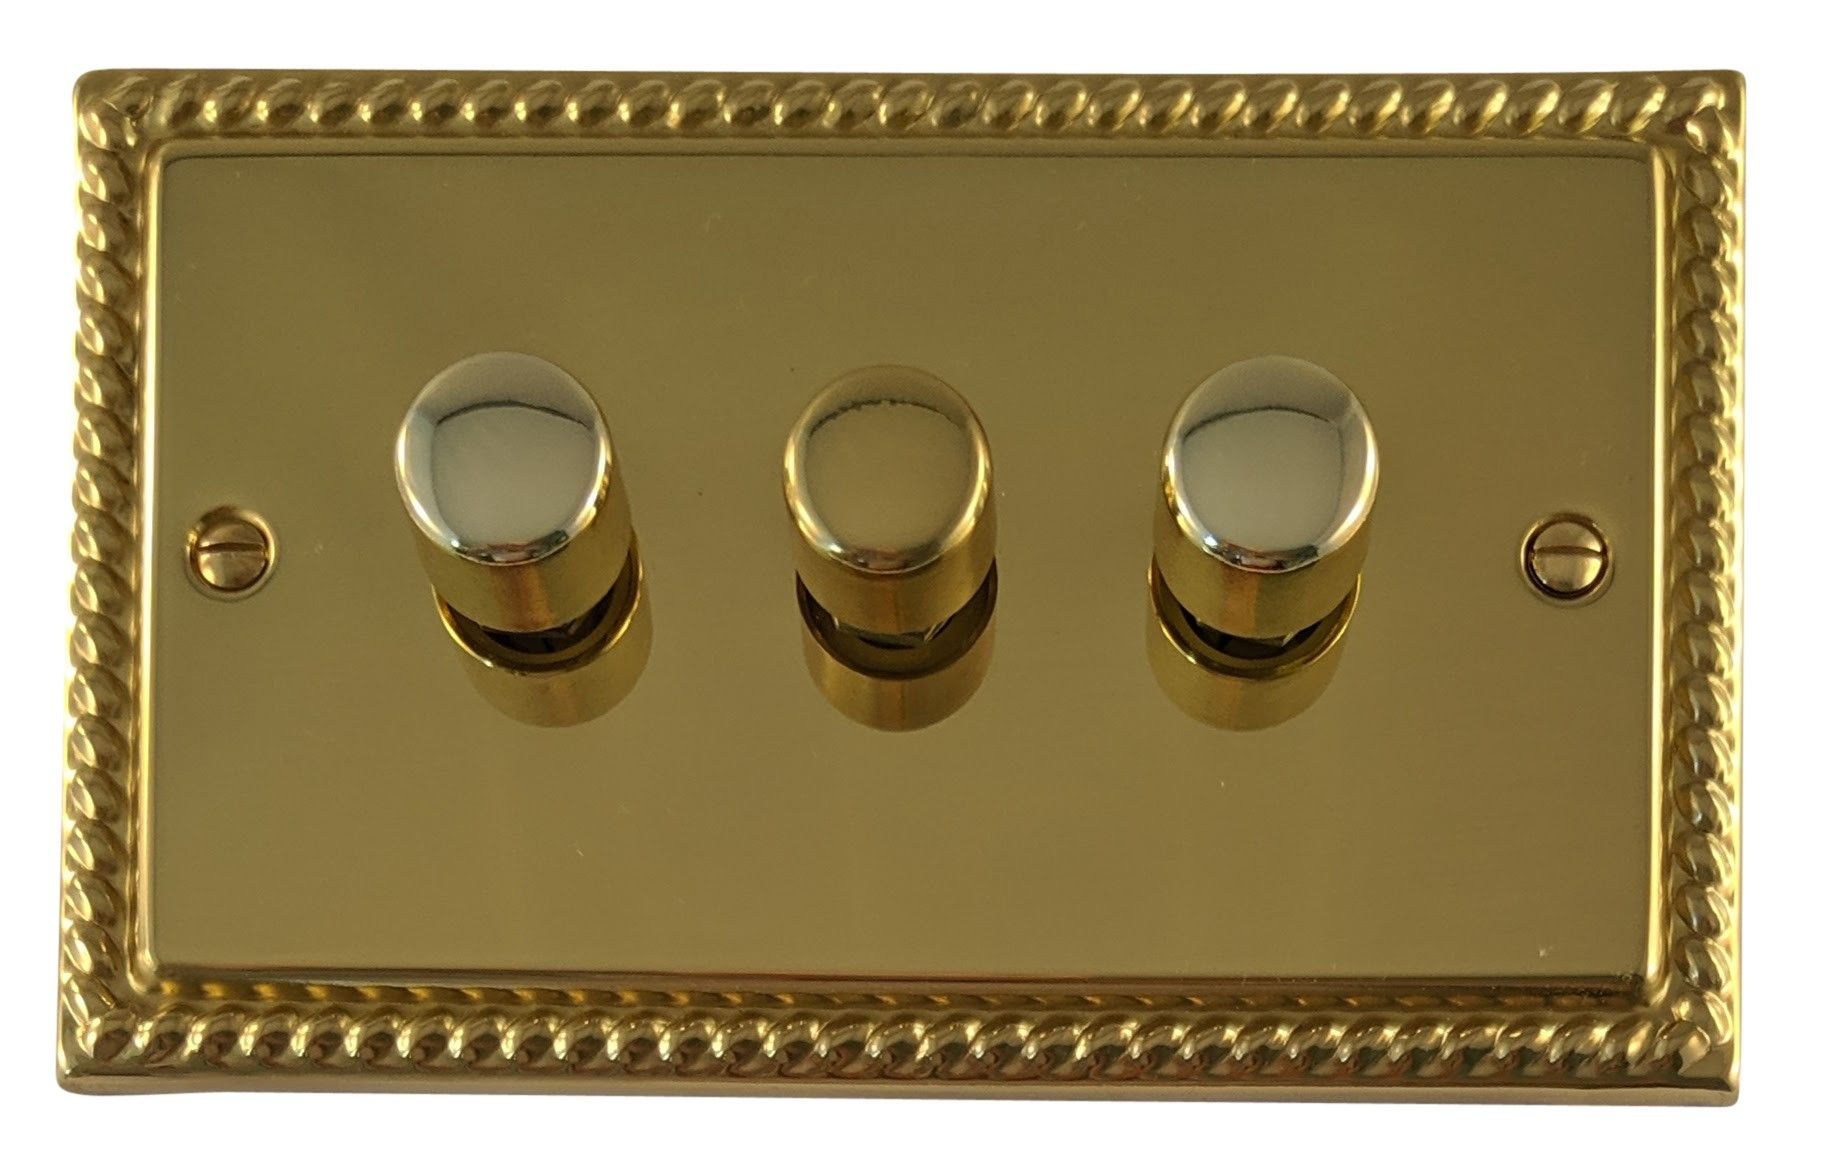 G&H MB13 Monarch Roped Polished Brass 3 Gang 1 or 2 Way 40-400W Dimmer Switch